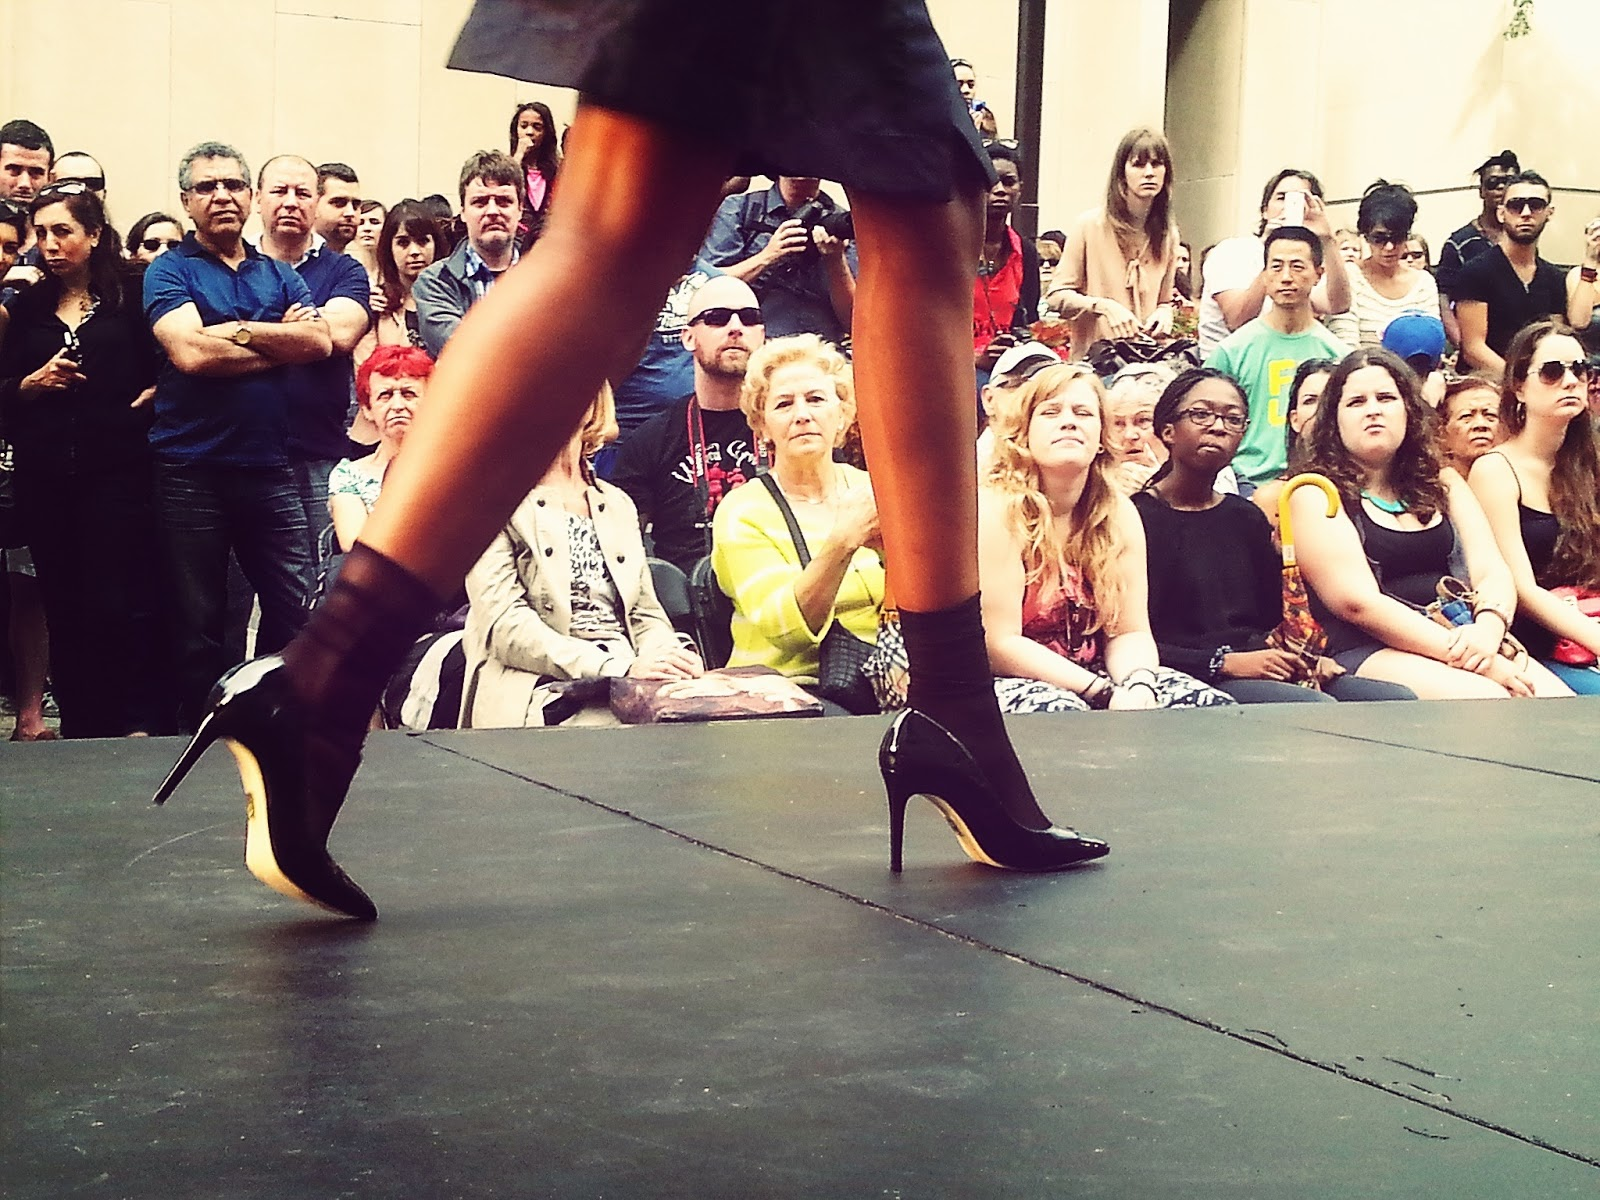 UNTTLD black heels socks skirt fashion show festival mode design